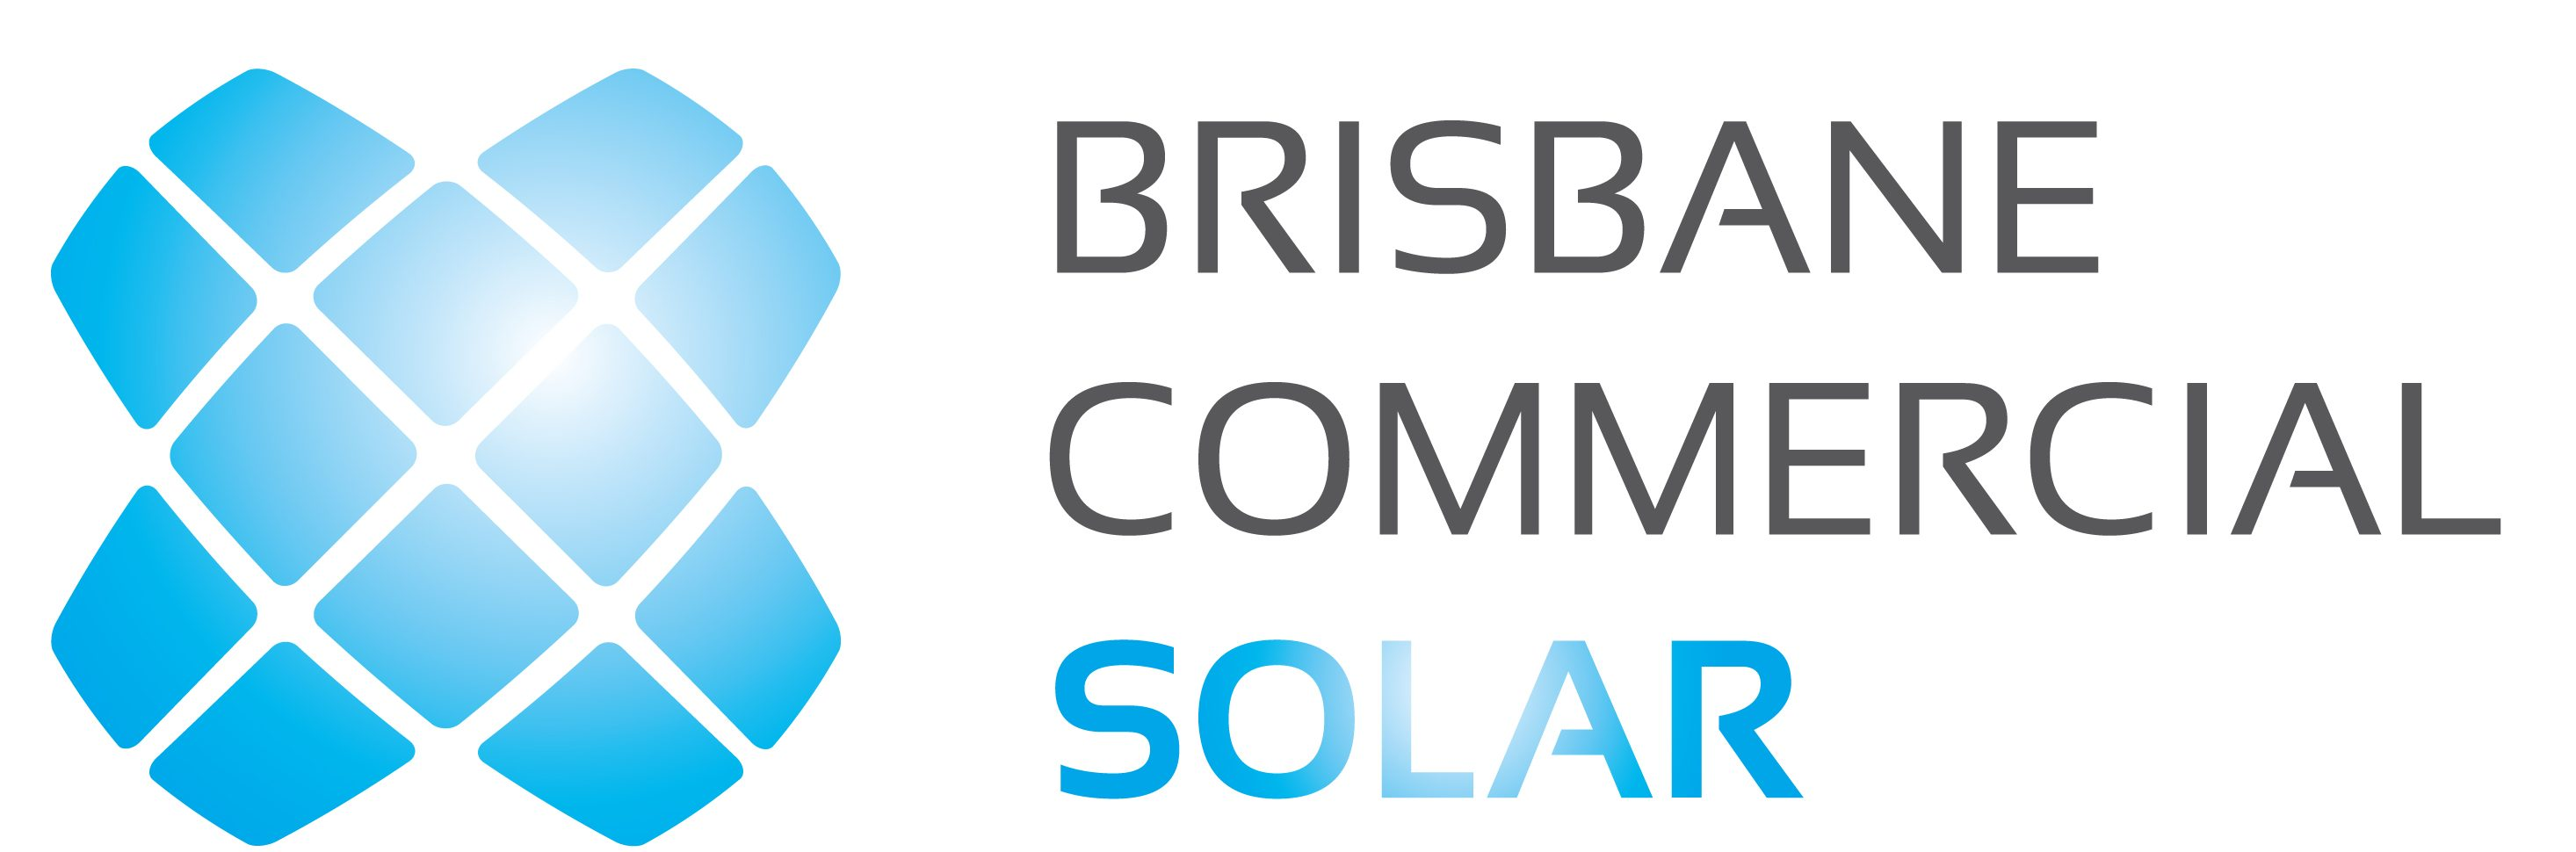 Brisbane Commercial Solar